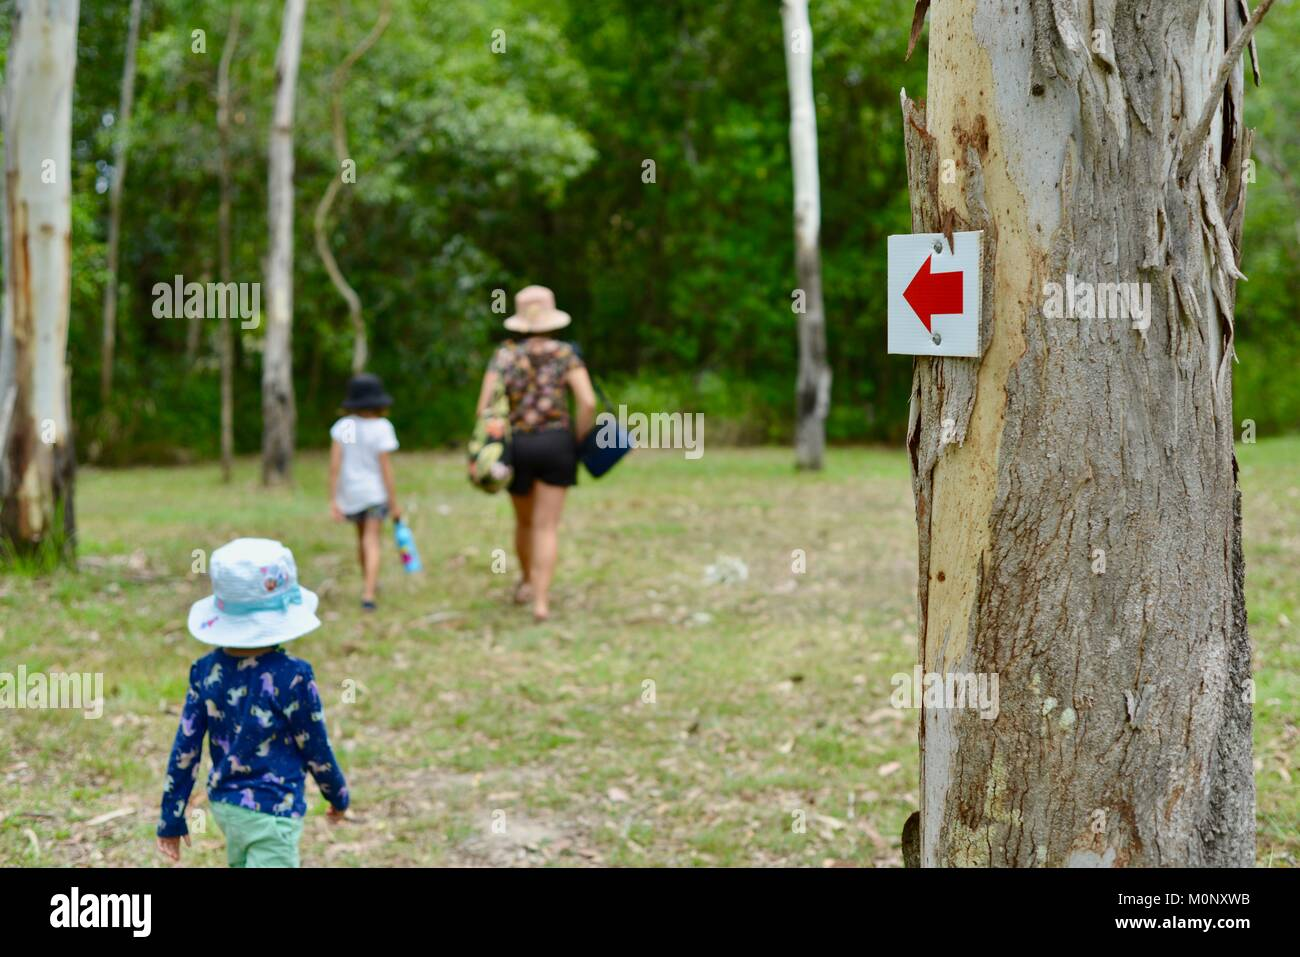 Women and child wali through grass field in forest with small child left behind, Herveys Range Heritage Tea Rooms, - Stock Image